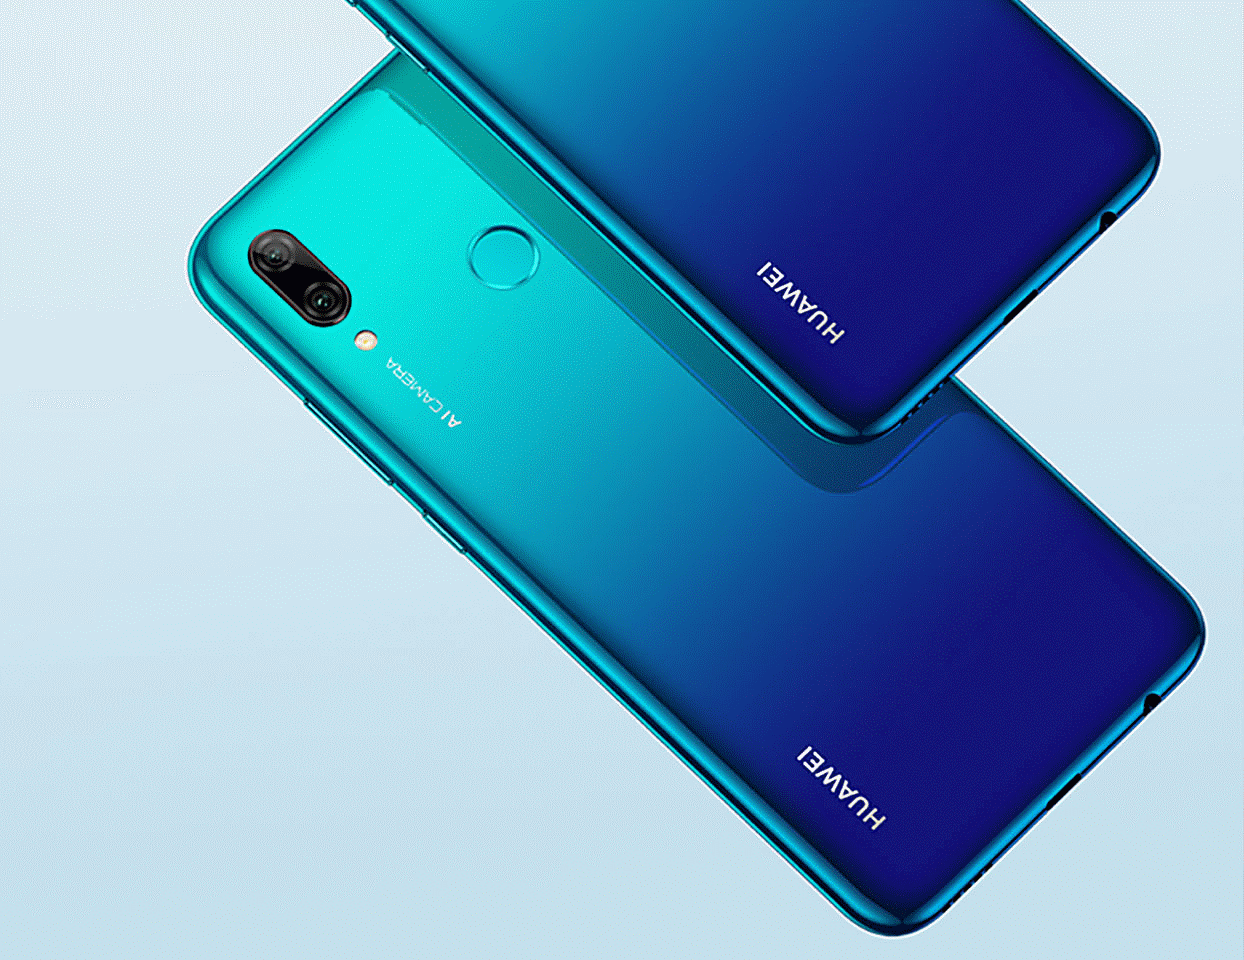 Huawei P Smart 2019 Deals - Contract, Upgrade, Sim Free & Unlocked